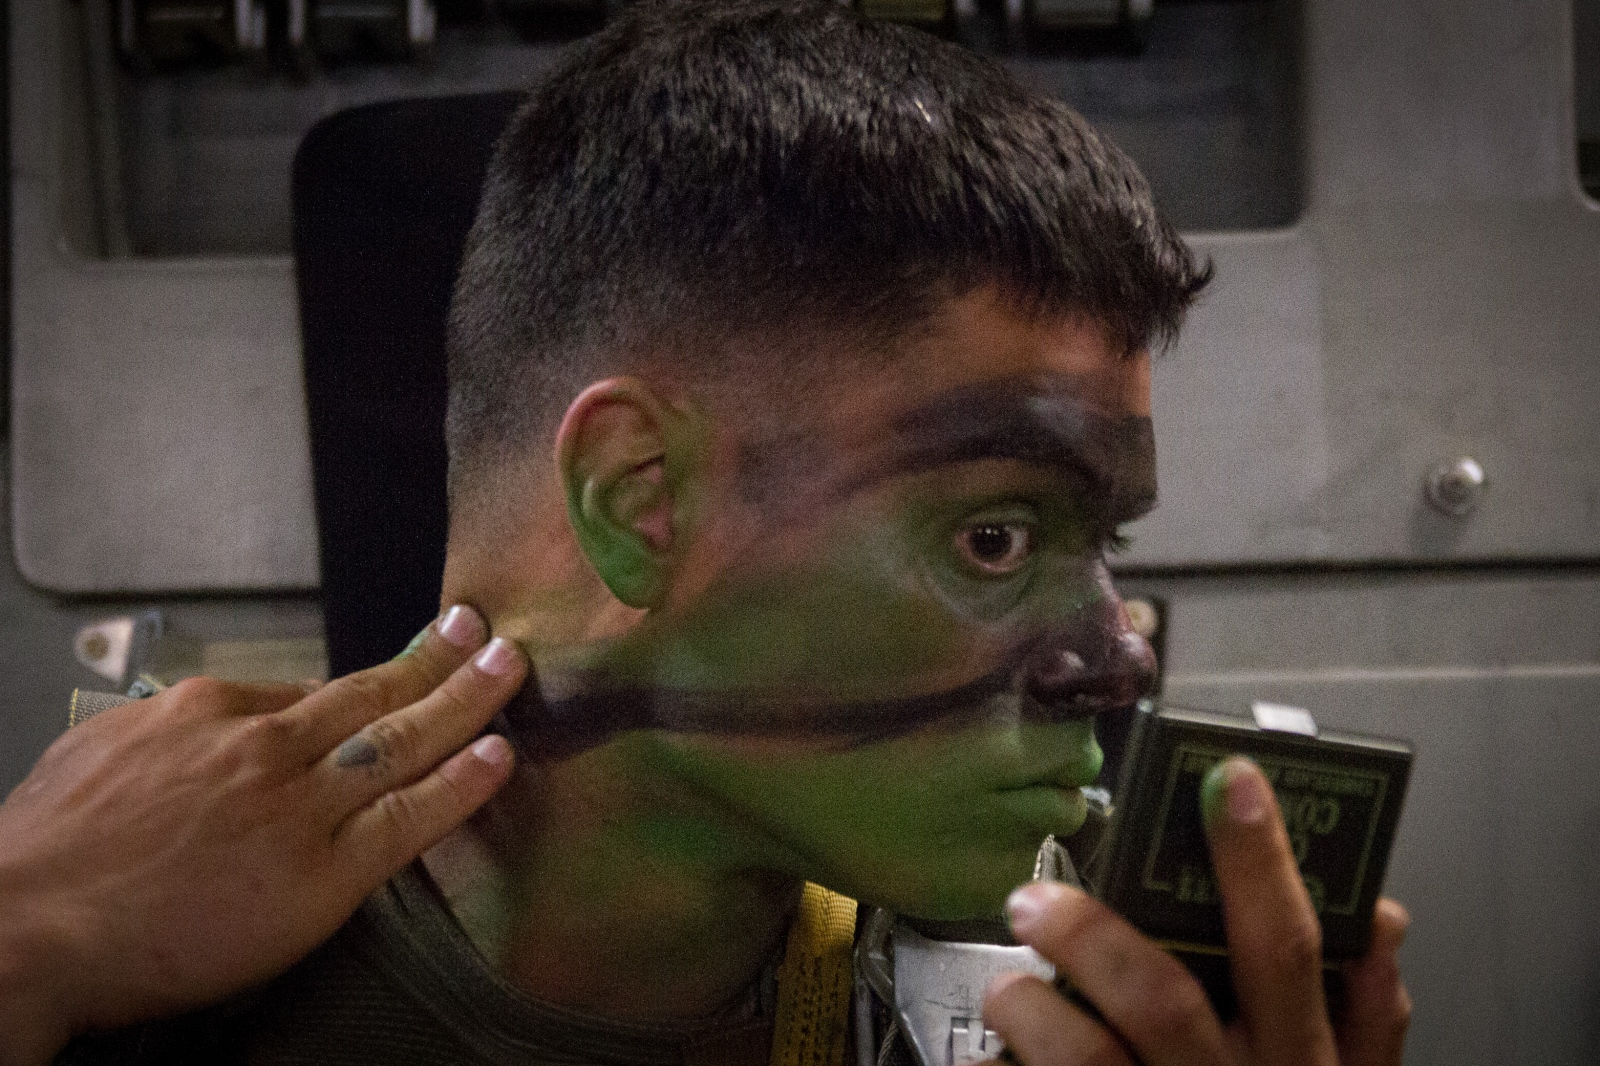 A paratrooper from the 82nd Airborne applied combat makeup prior to a training jump over Gabon Africa.